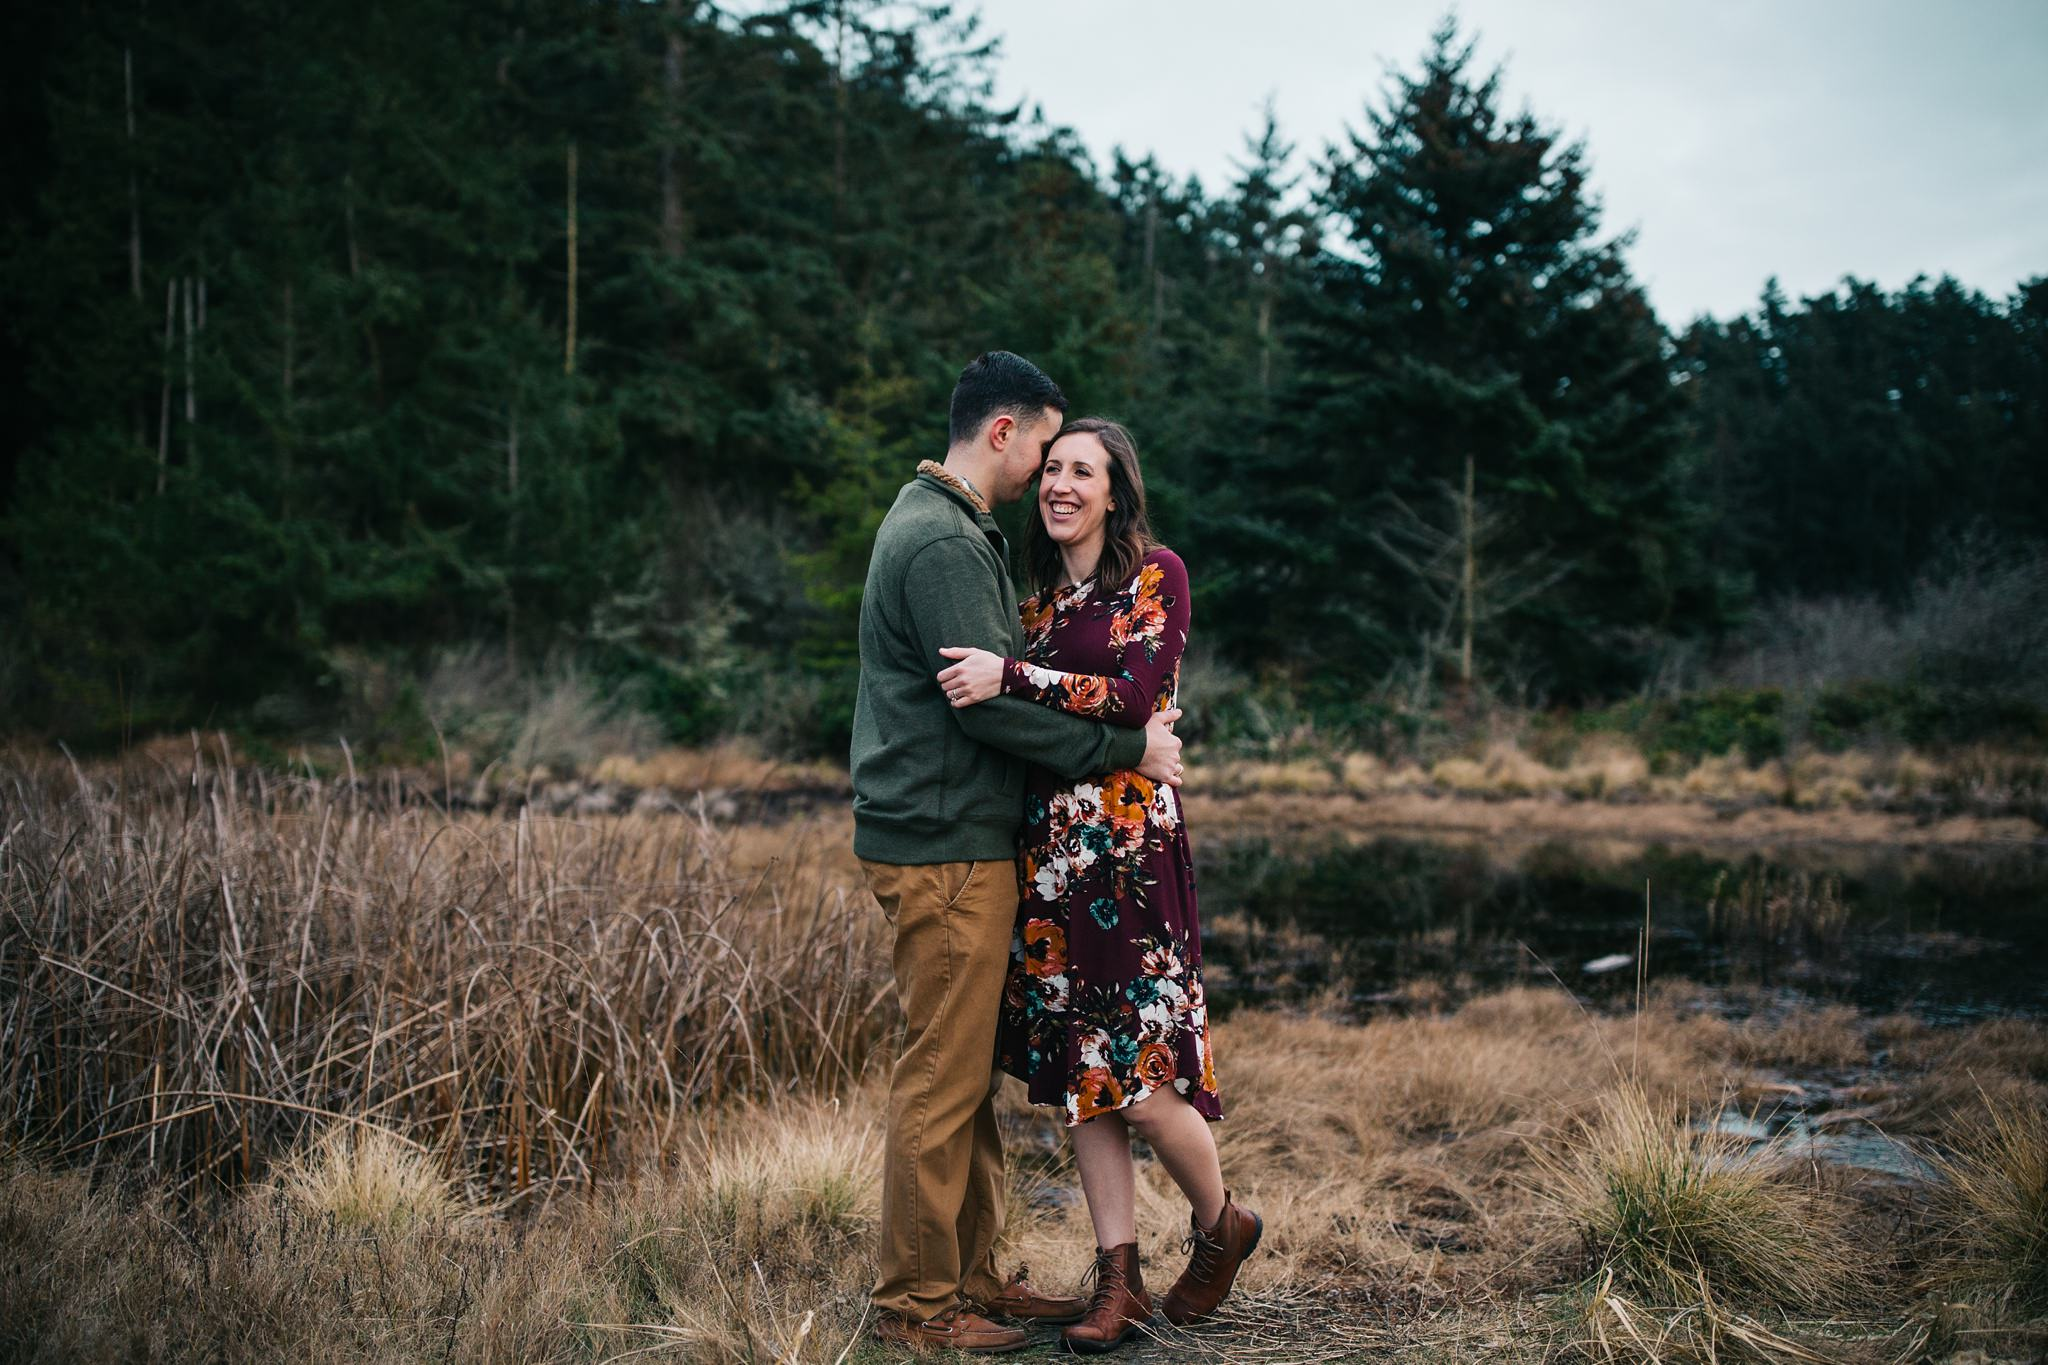 Whidbey-Island-Family-Photographer-Kara-Chappell-Photography_1803.jpg